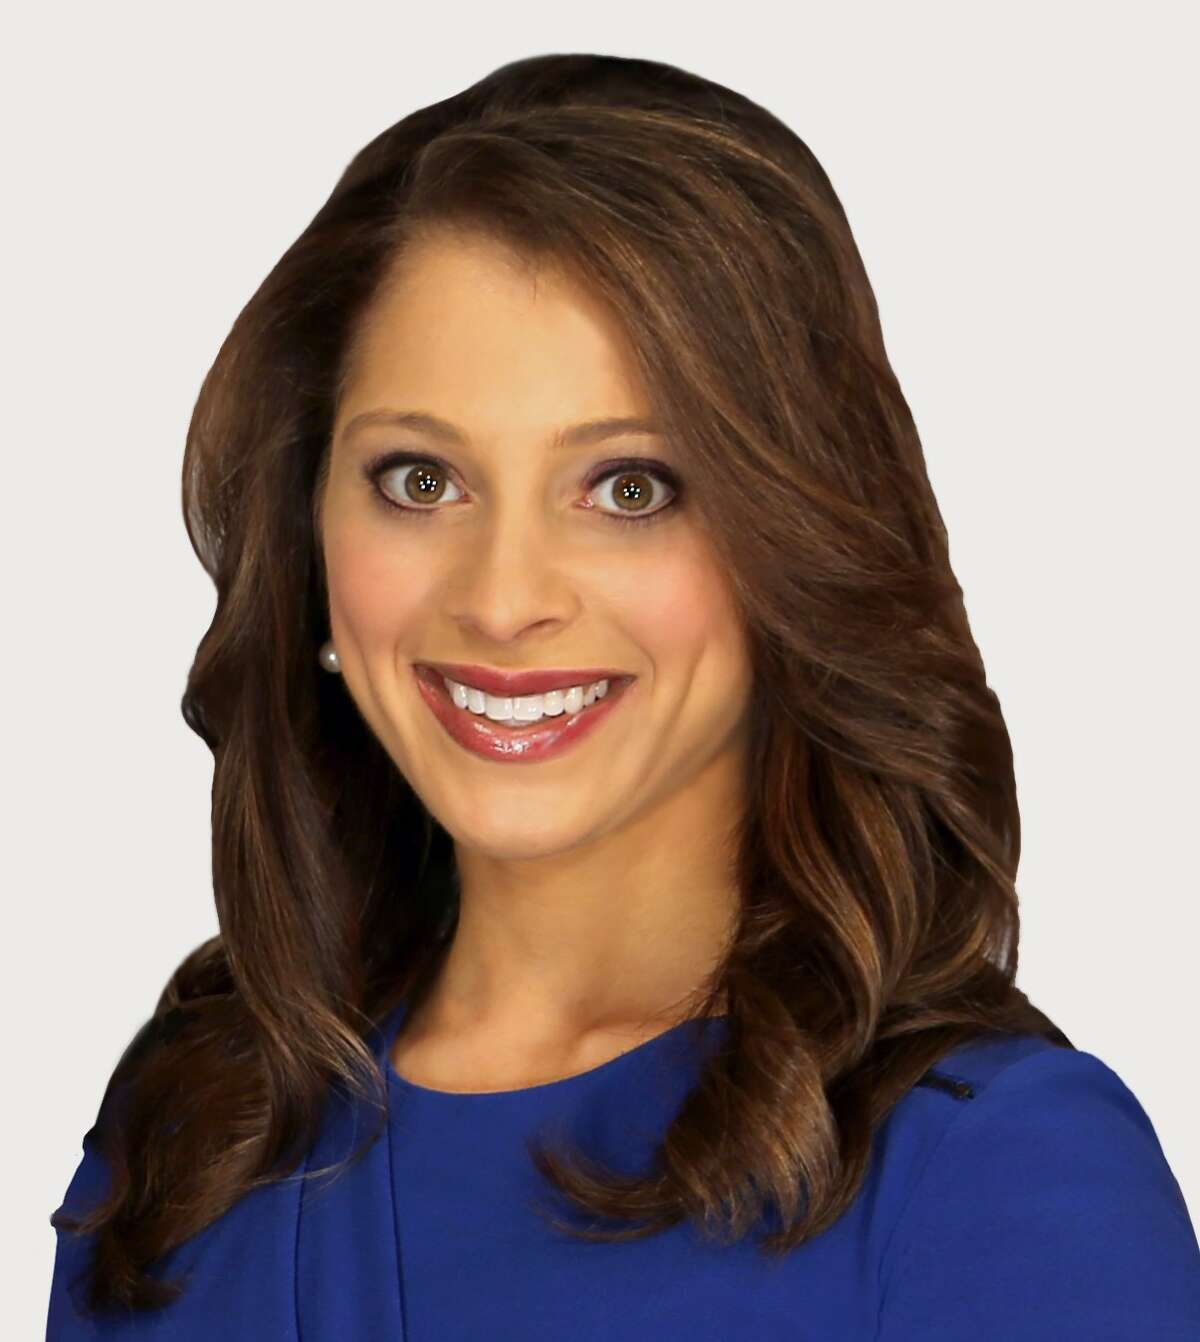 Lindsey Day joined KRIV-TV in March 2015 as the weekend and weekday meteorologist. In late February 2016, a Fox Television representative said Day was leaving the station and that her last day was March 6. These days, she's been working as a health-fitness specialist and occasionally doing related segments for KIAH-TV.